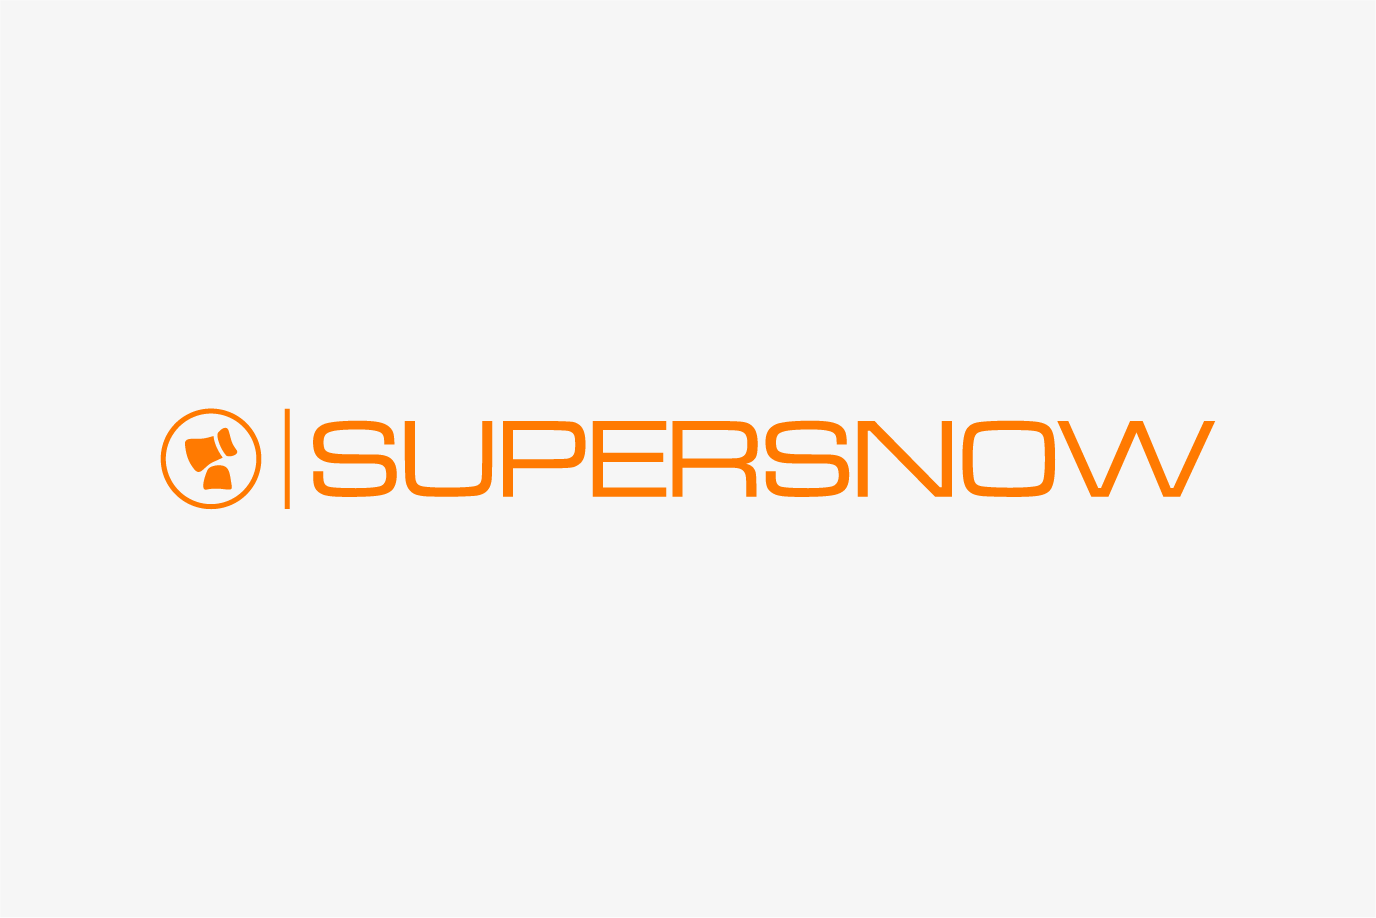 1604393032_logotyp-supersnow.png